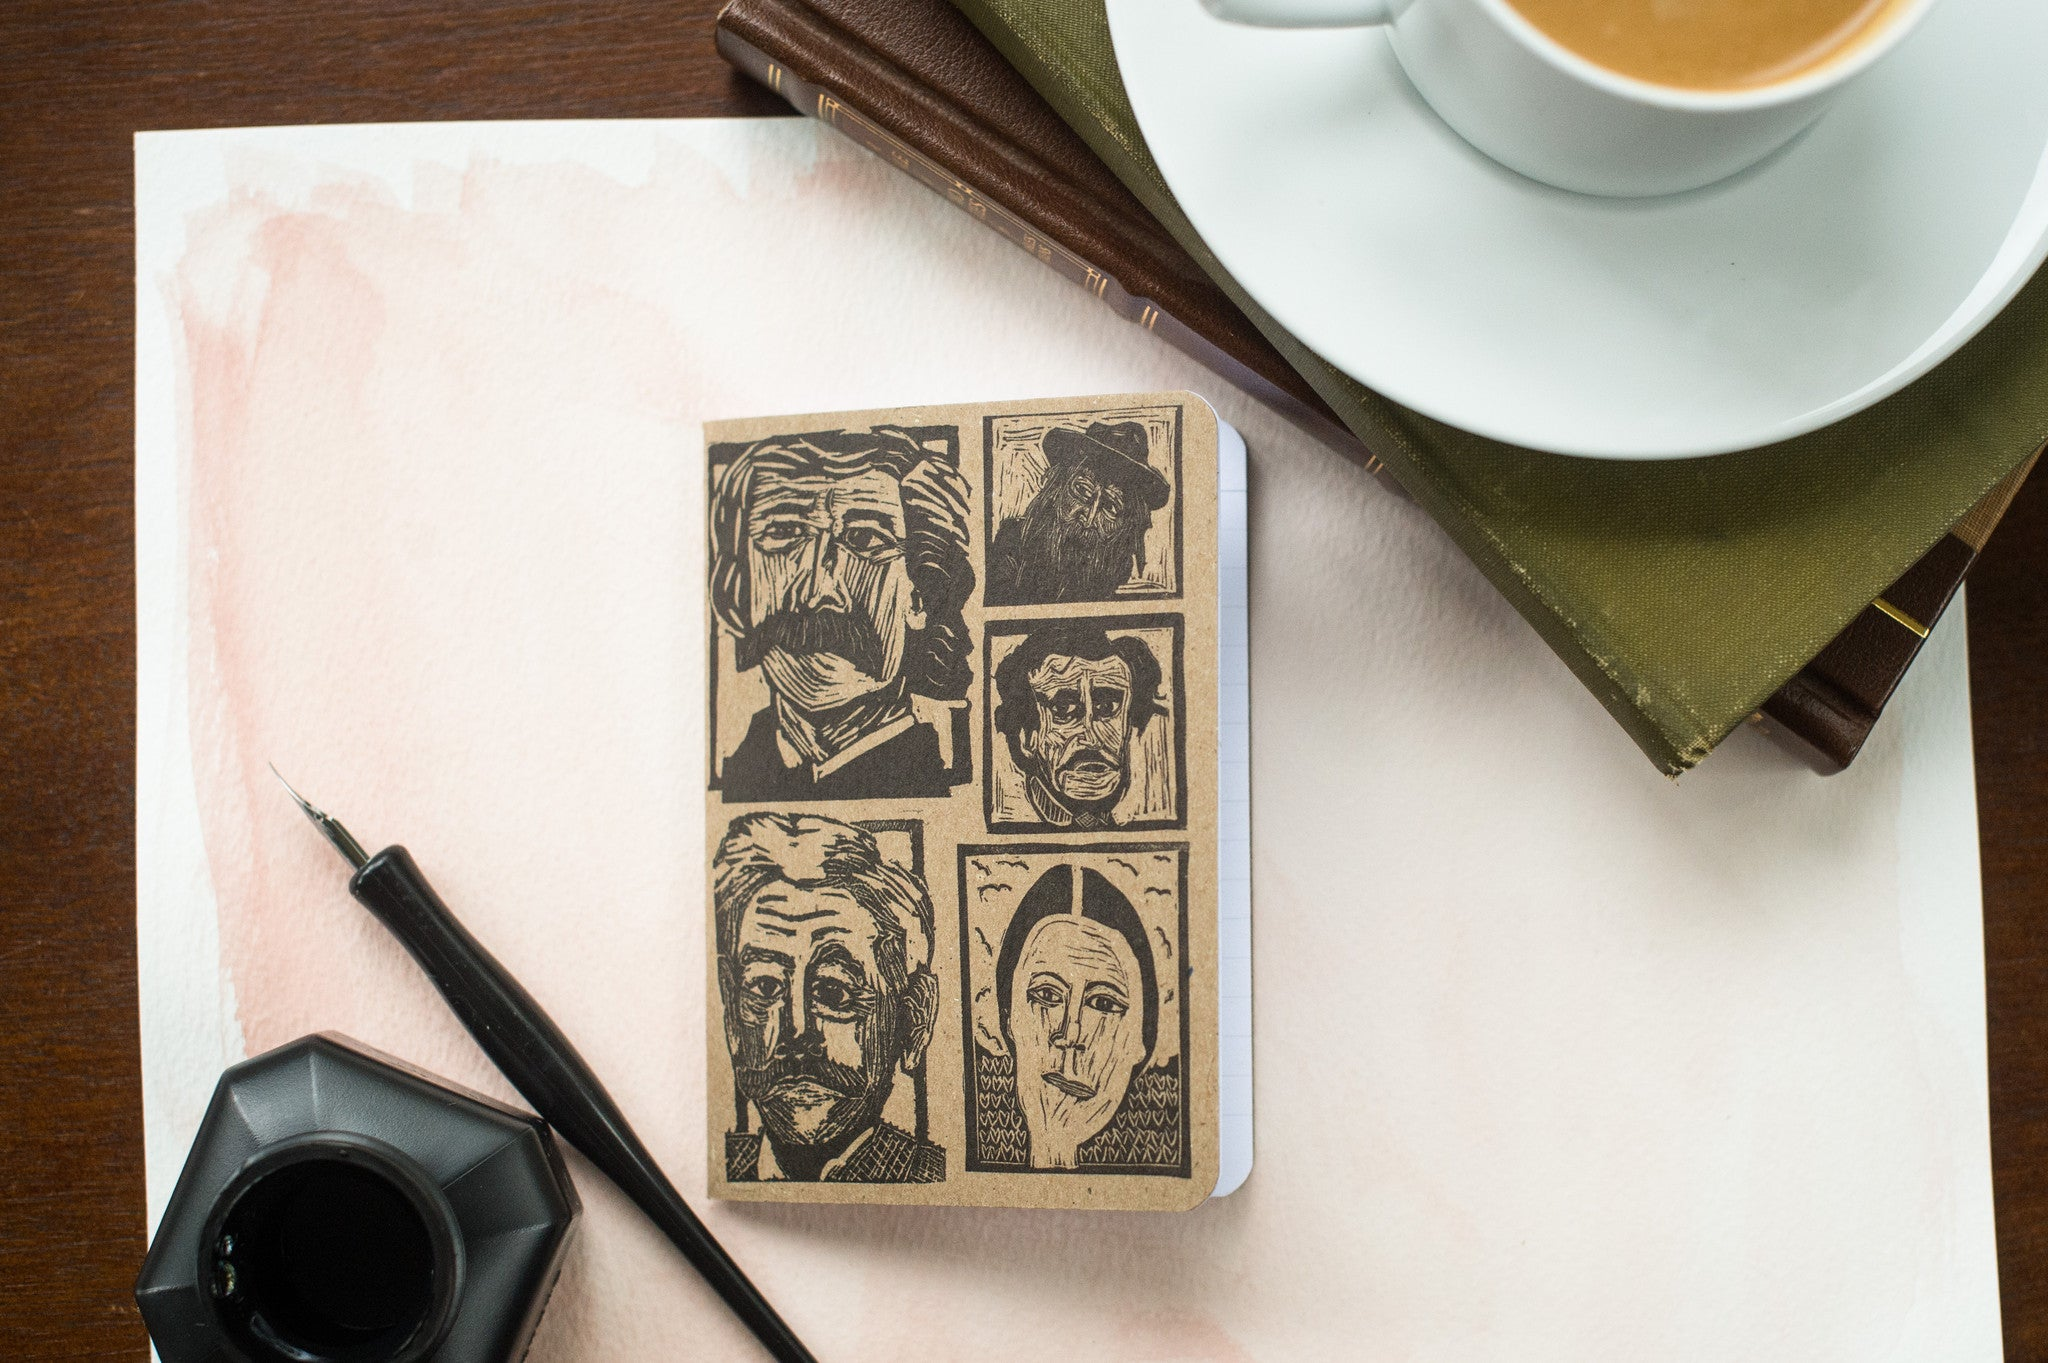 Notebook with Whitman, Twain, Dickinson, Poe and Faulkner prints by Eastgrove Studio.